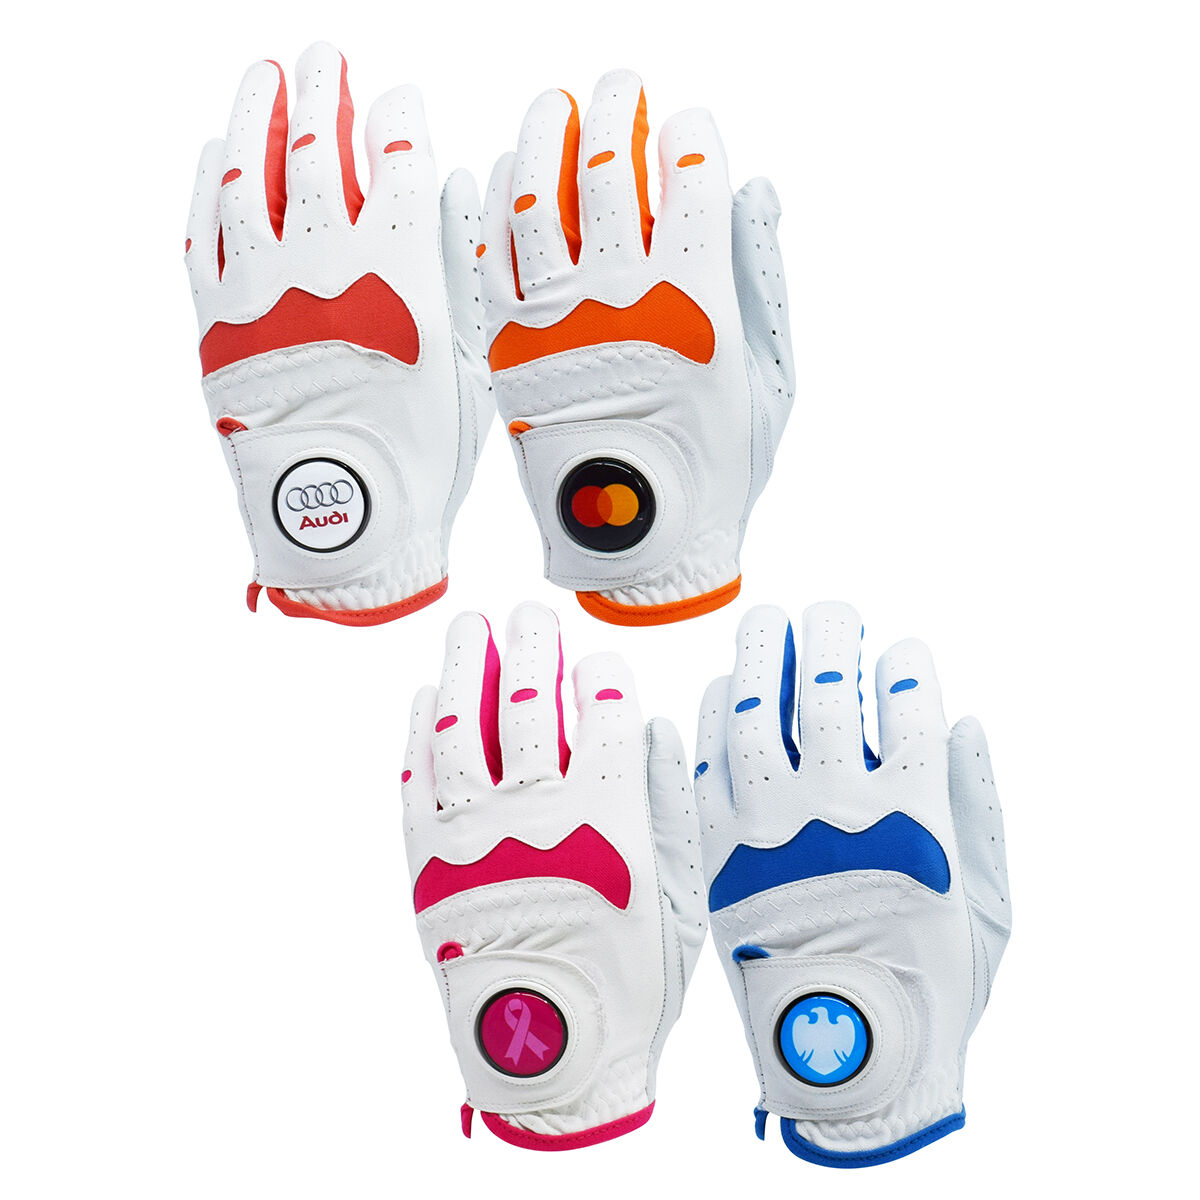 Leather Cabretta Golf Gloves Full Colour Printed